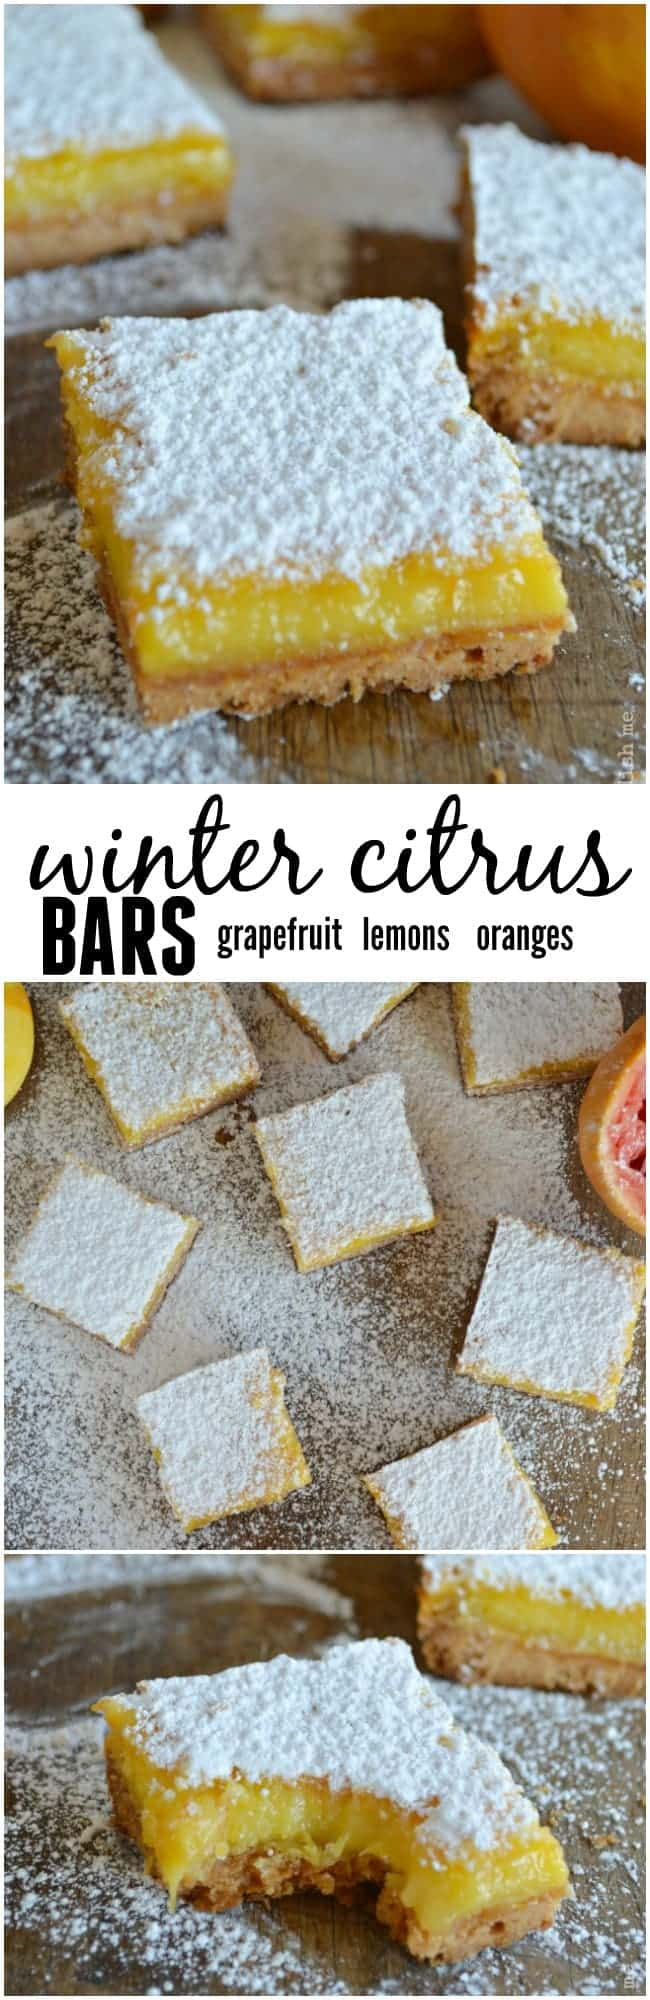 Winter citrus bars are loaded with my favorite winter fruits: grapefruit, blood oranges, and Meyer lemons. with a shortbread crust!